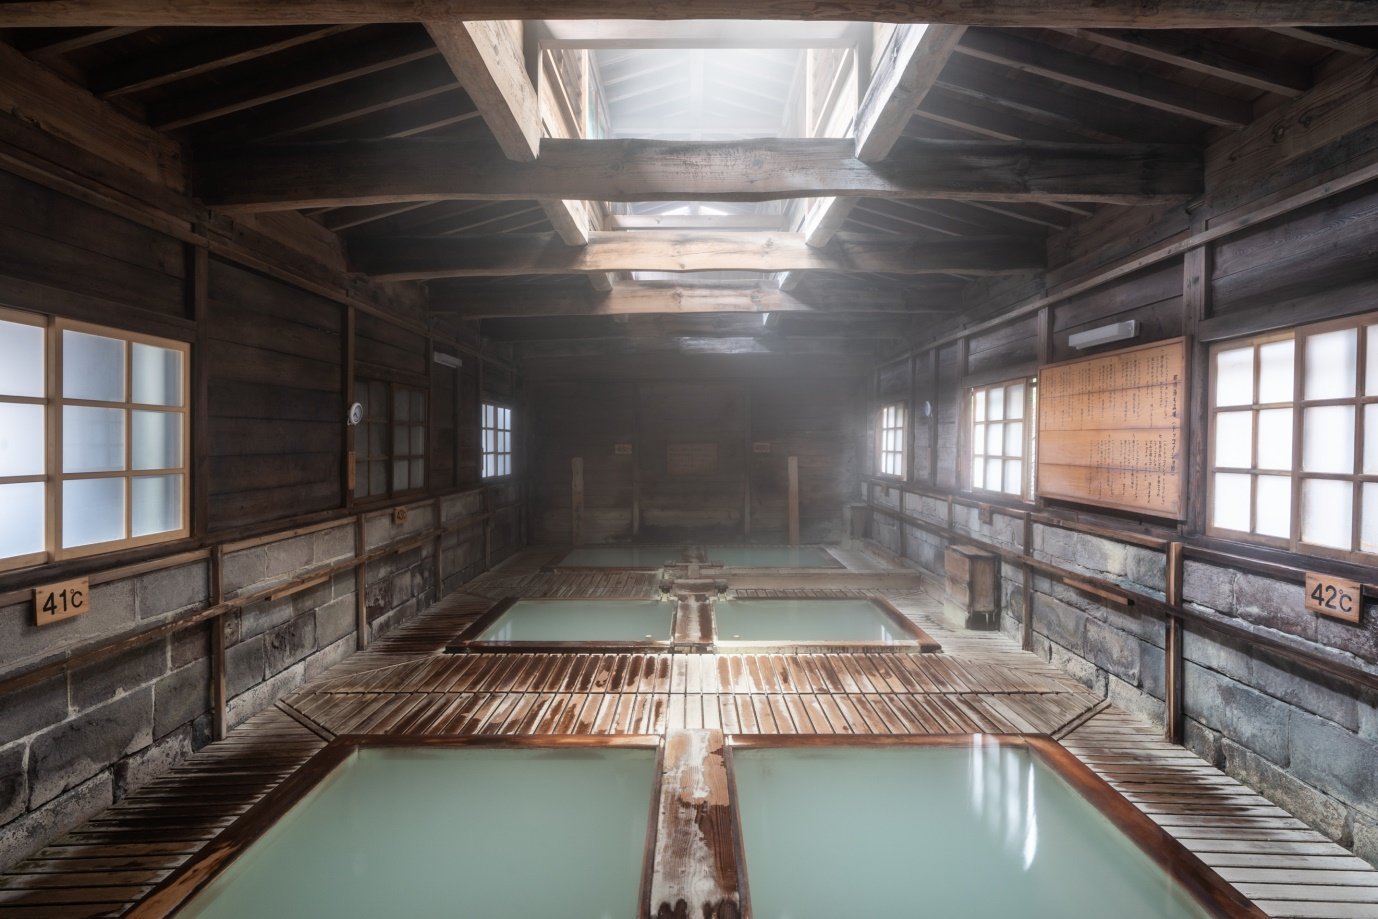 Shika-no-yu is a bathhouse steeped in history that offers six bathes for you to have a dip in, the ideal finish to a day of hiking